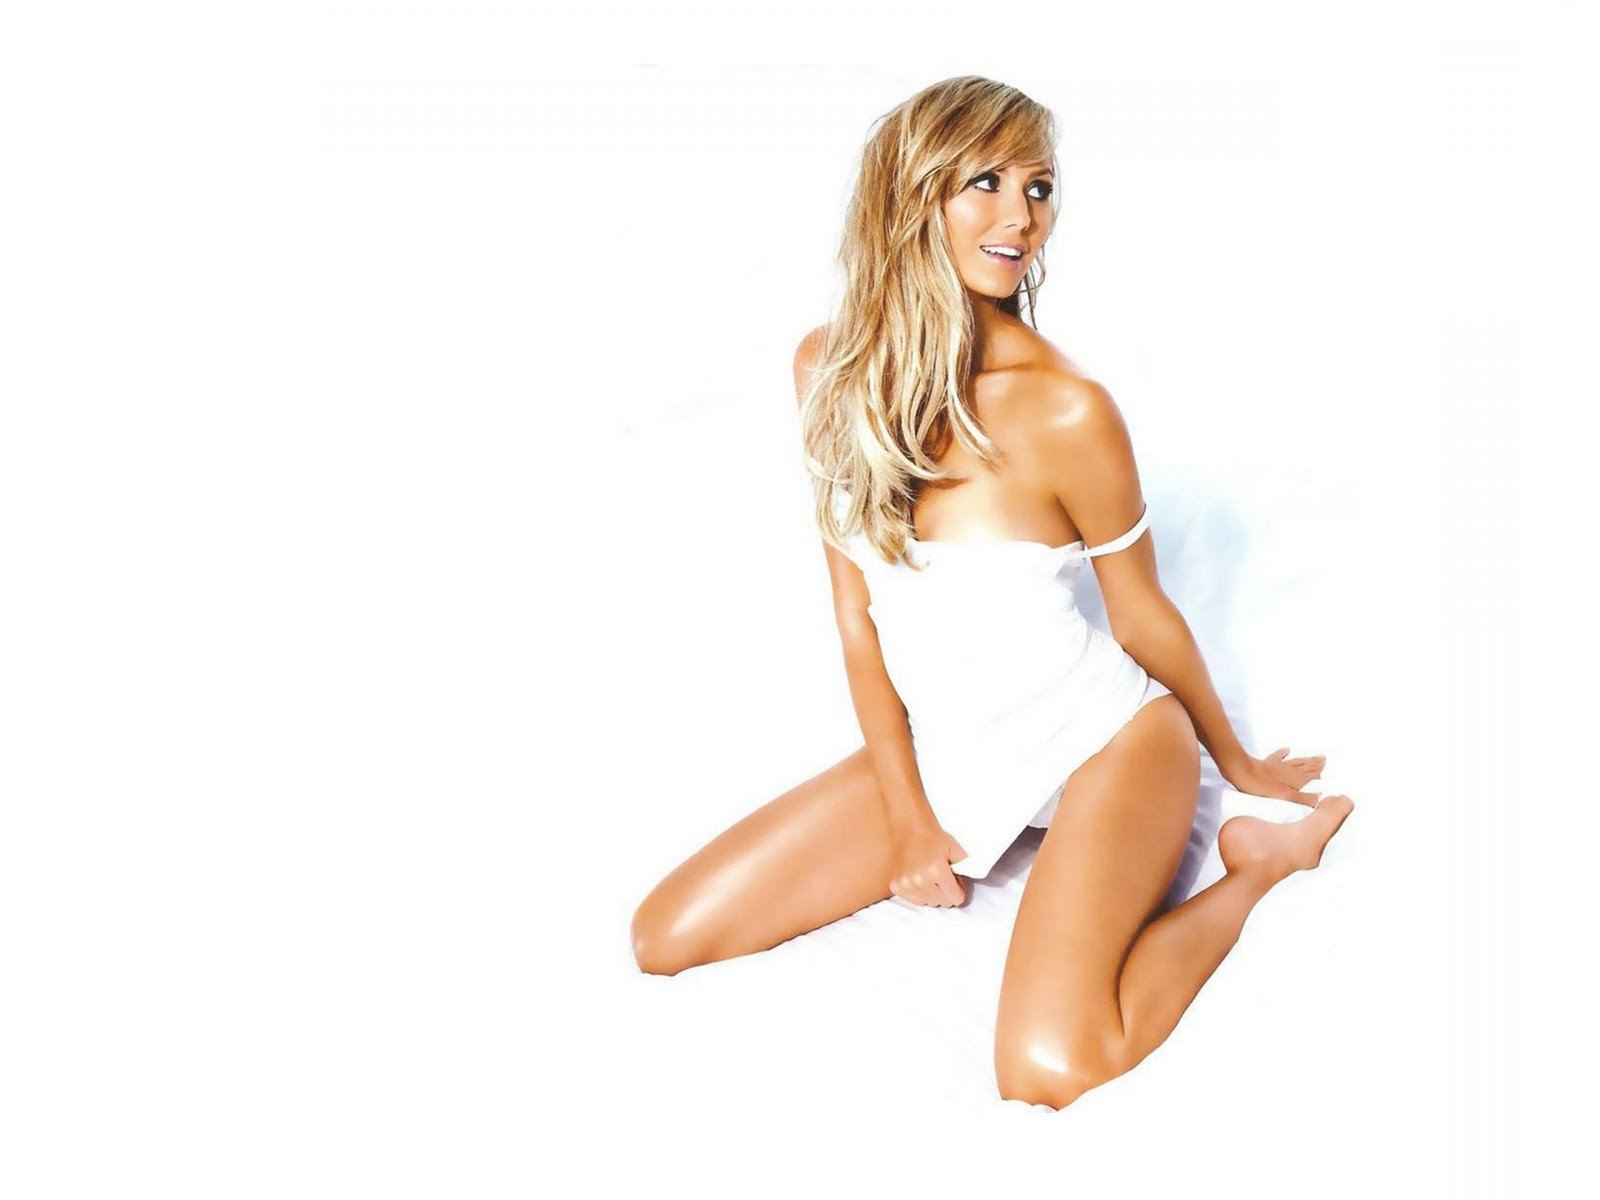 stacy keibler 1440x900 wallpapers - photo #12